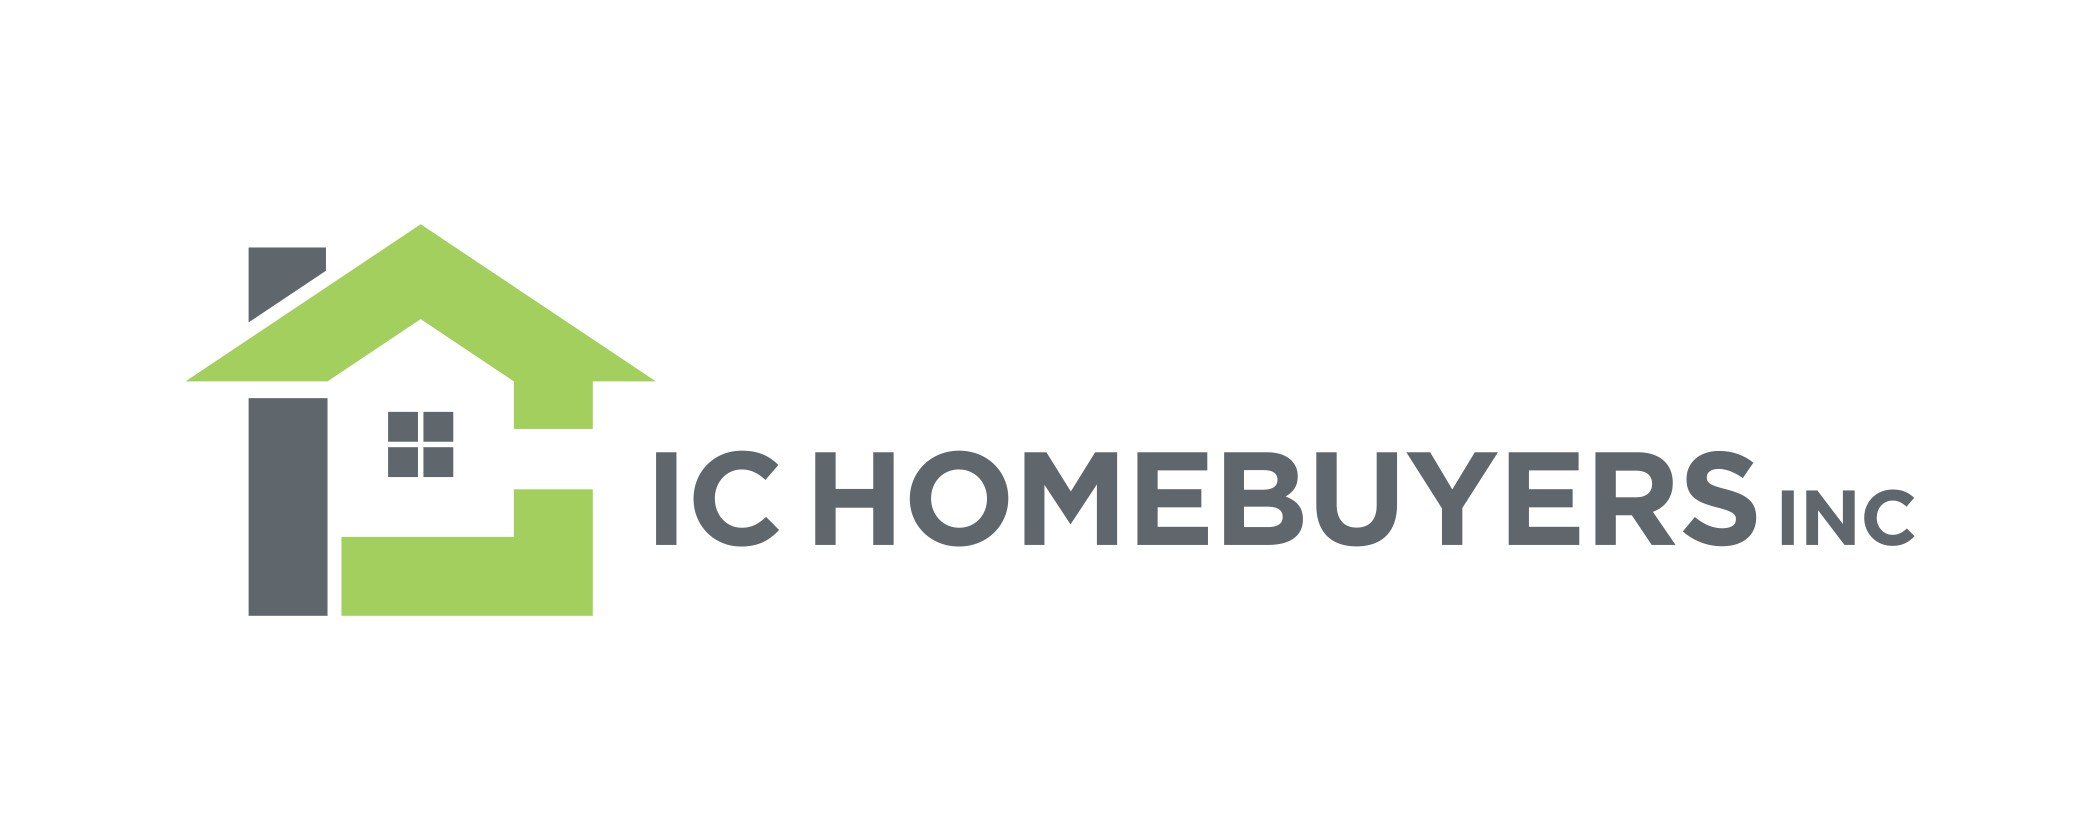 Real estate investment company needs a tech-like startup logo